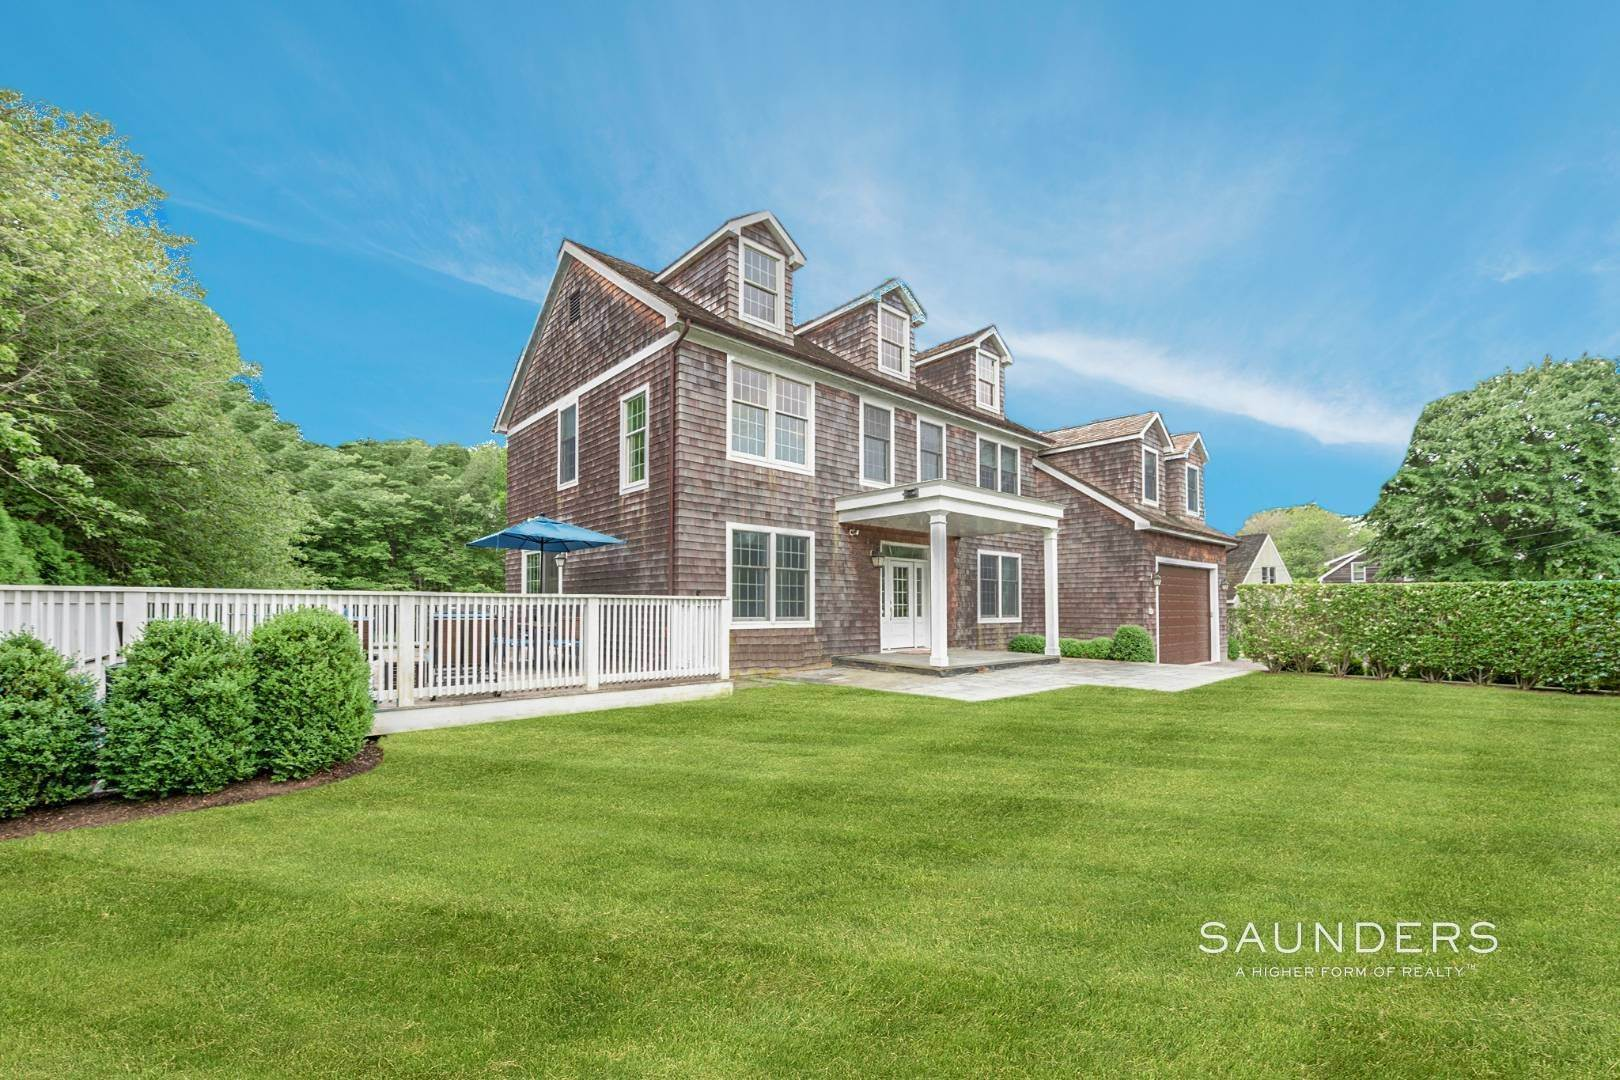 Single Family Homes for Sale at Turnkey Village South With Pool 207 Oak Street, Bridgehampton, Southampton Town, NY 11932